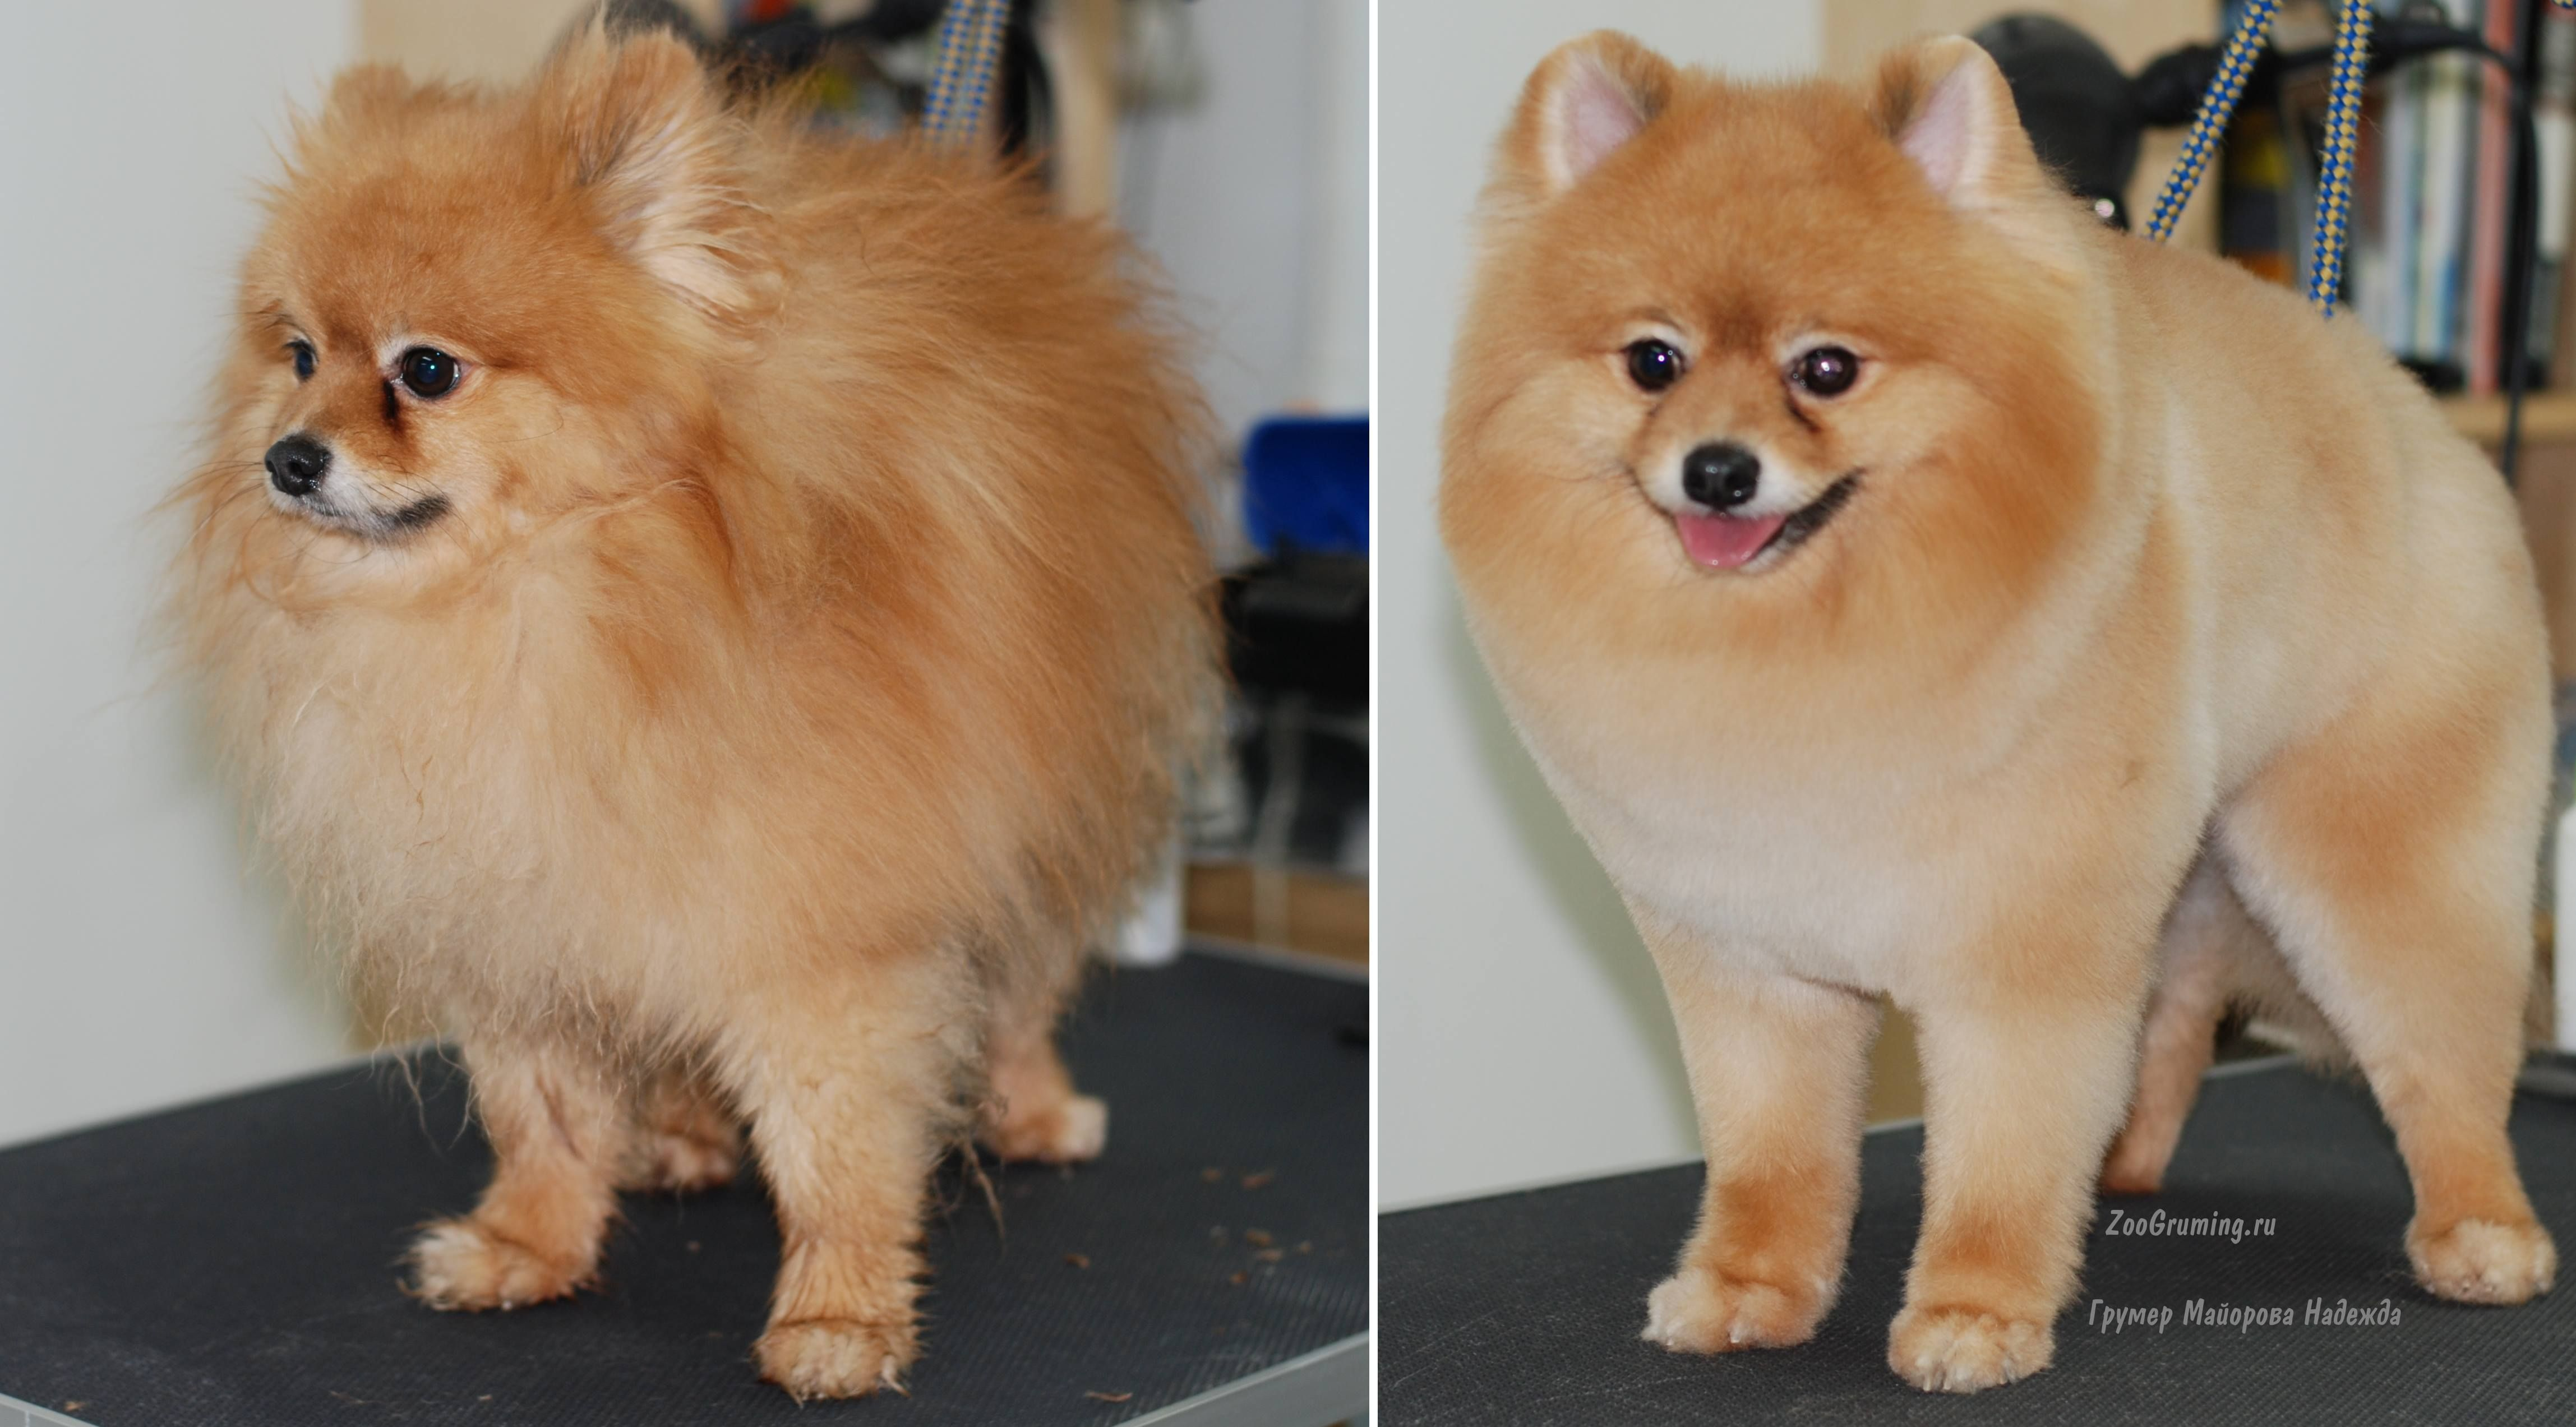 Strizhka Pomeranskogo Shpica Do I Posle Grooming Grooming Pomeranian Before And After Zoogruming Ru Pomeranian Dog Cute Pomeranian Dog Grooming Styles